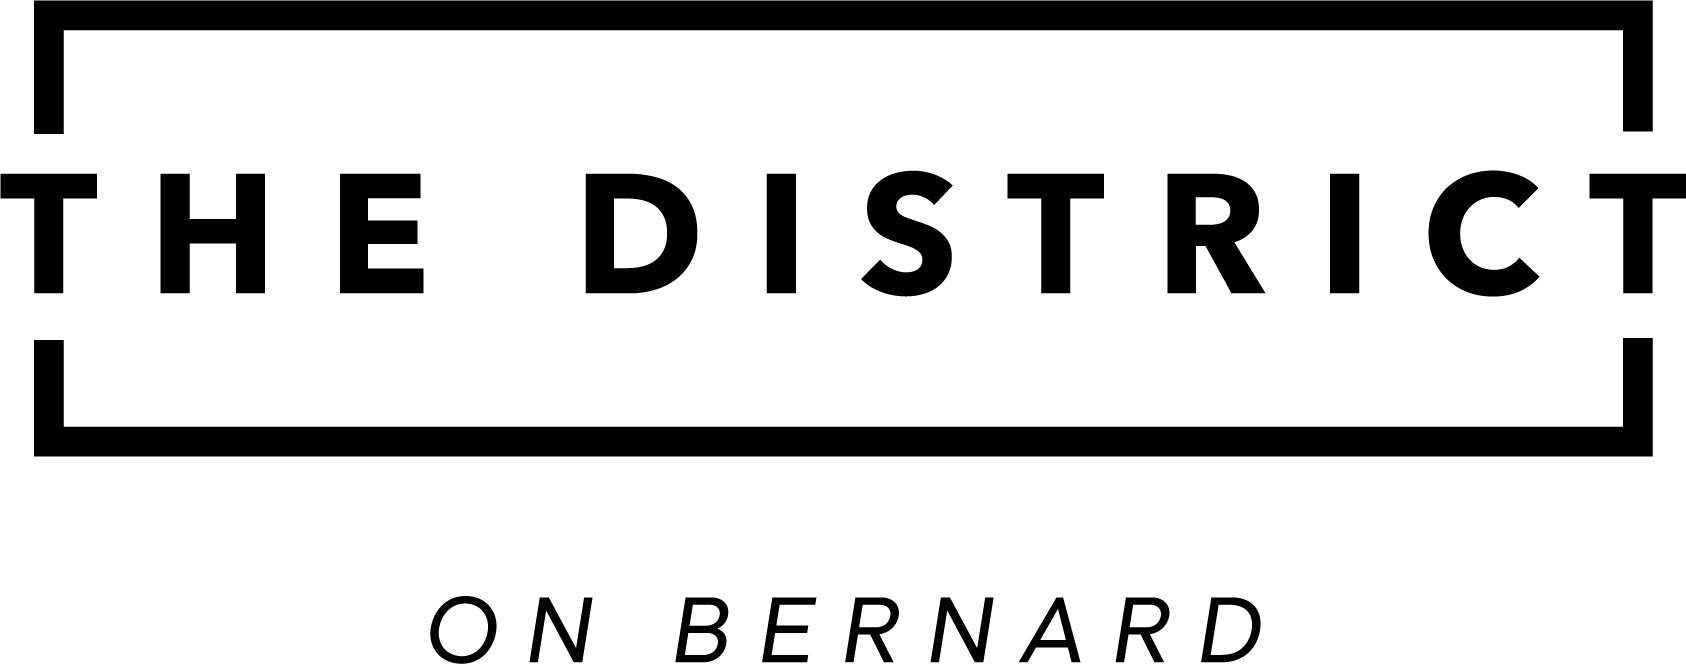 The District on Bernard